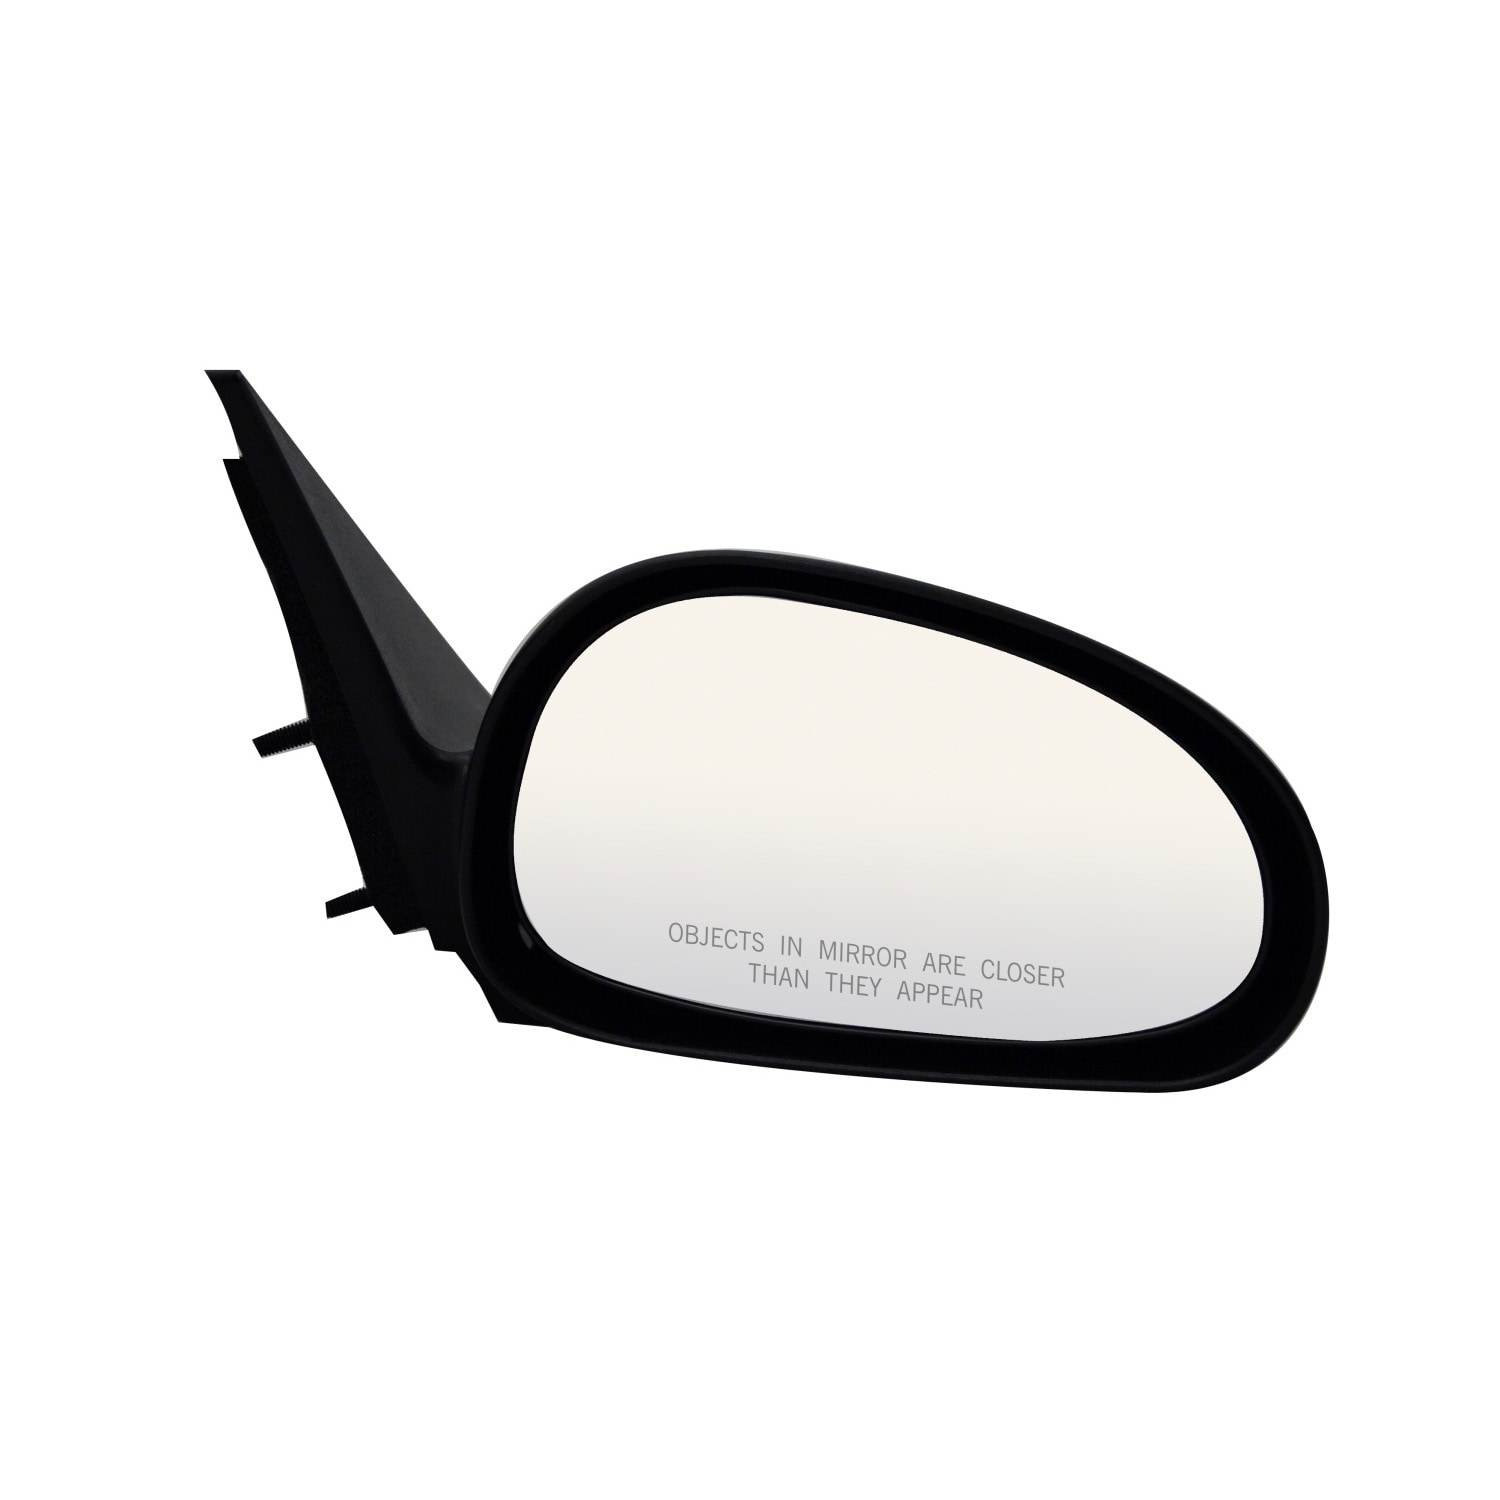 Door Mirror Right TYC 2540231 fits 99-04 Ford Mustang